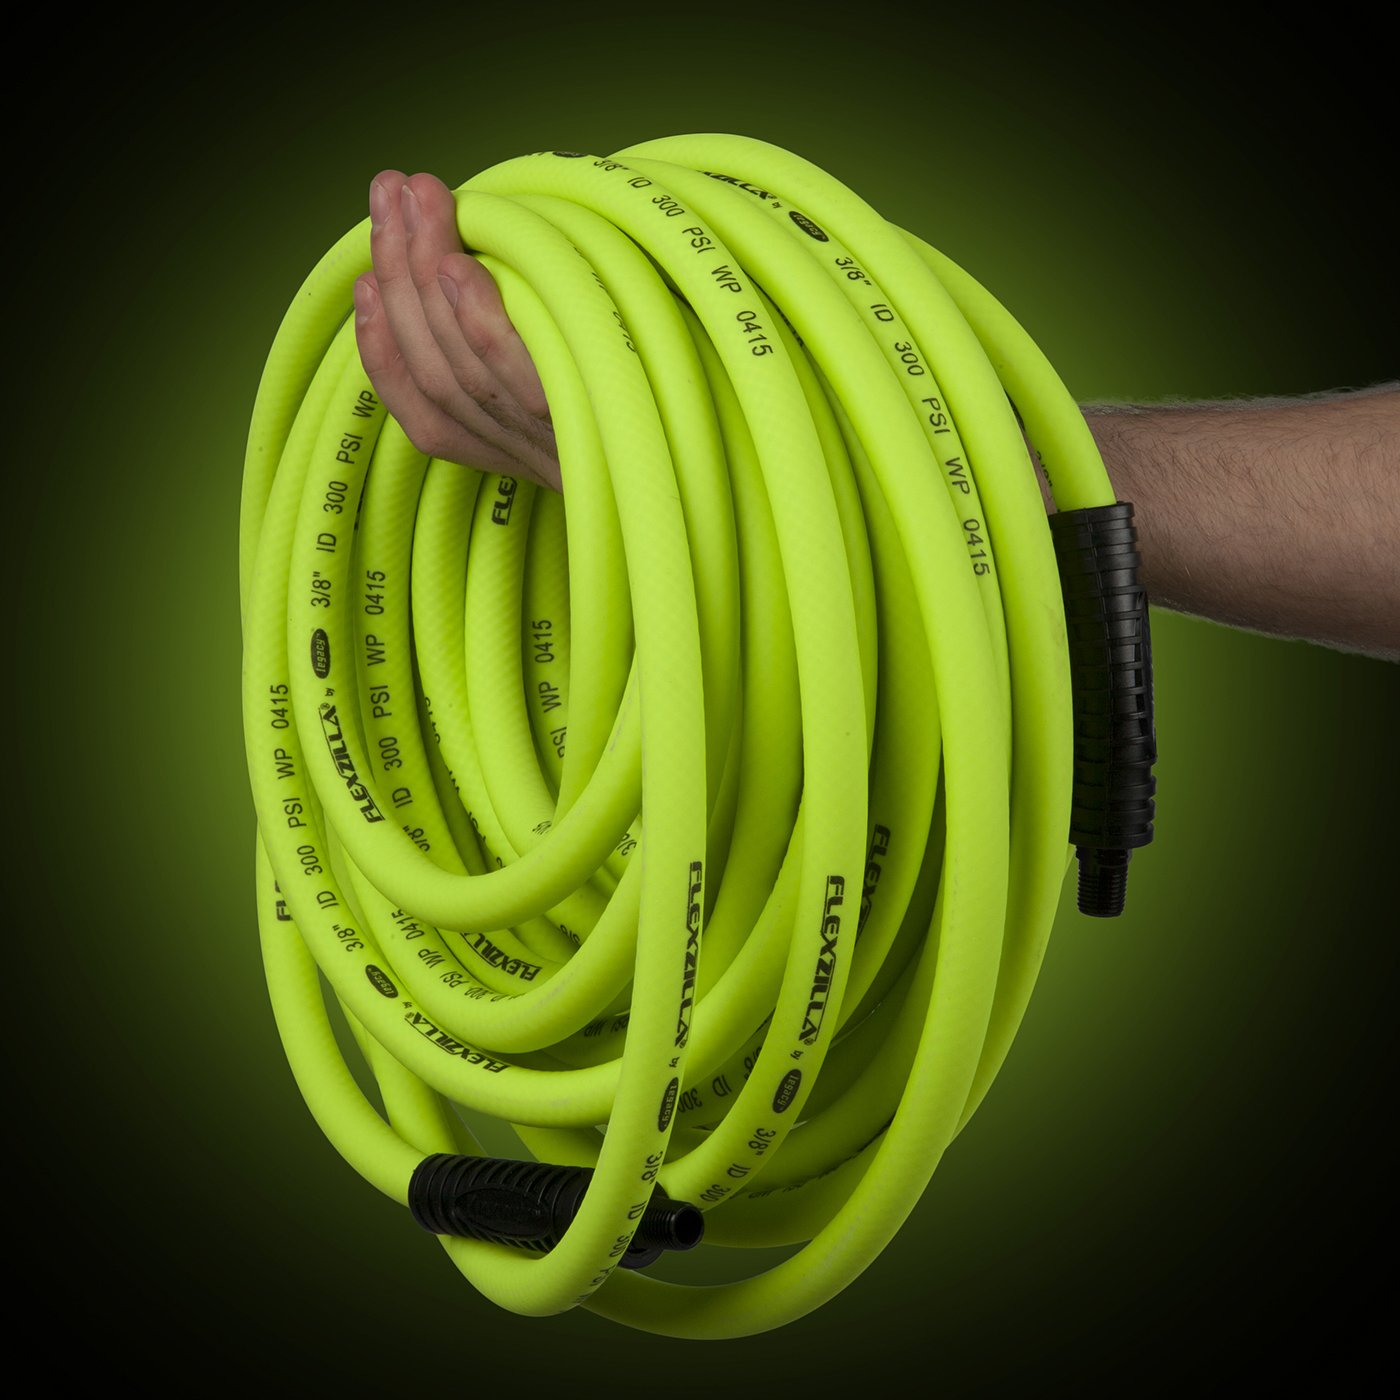 Flexzilla Air Hose, 1/2 in. x 100 ft., 1/2 in. MNPT Fittings, Heavy Duty, Lightweight, Hybrid, ZillaGreen - HFZ12100YW4 by Flexzilla (Image #3)